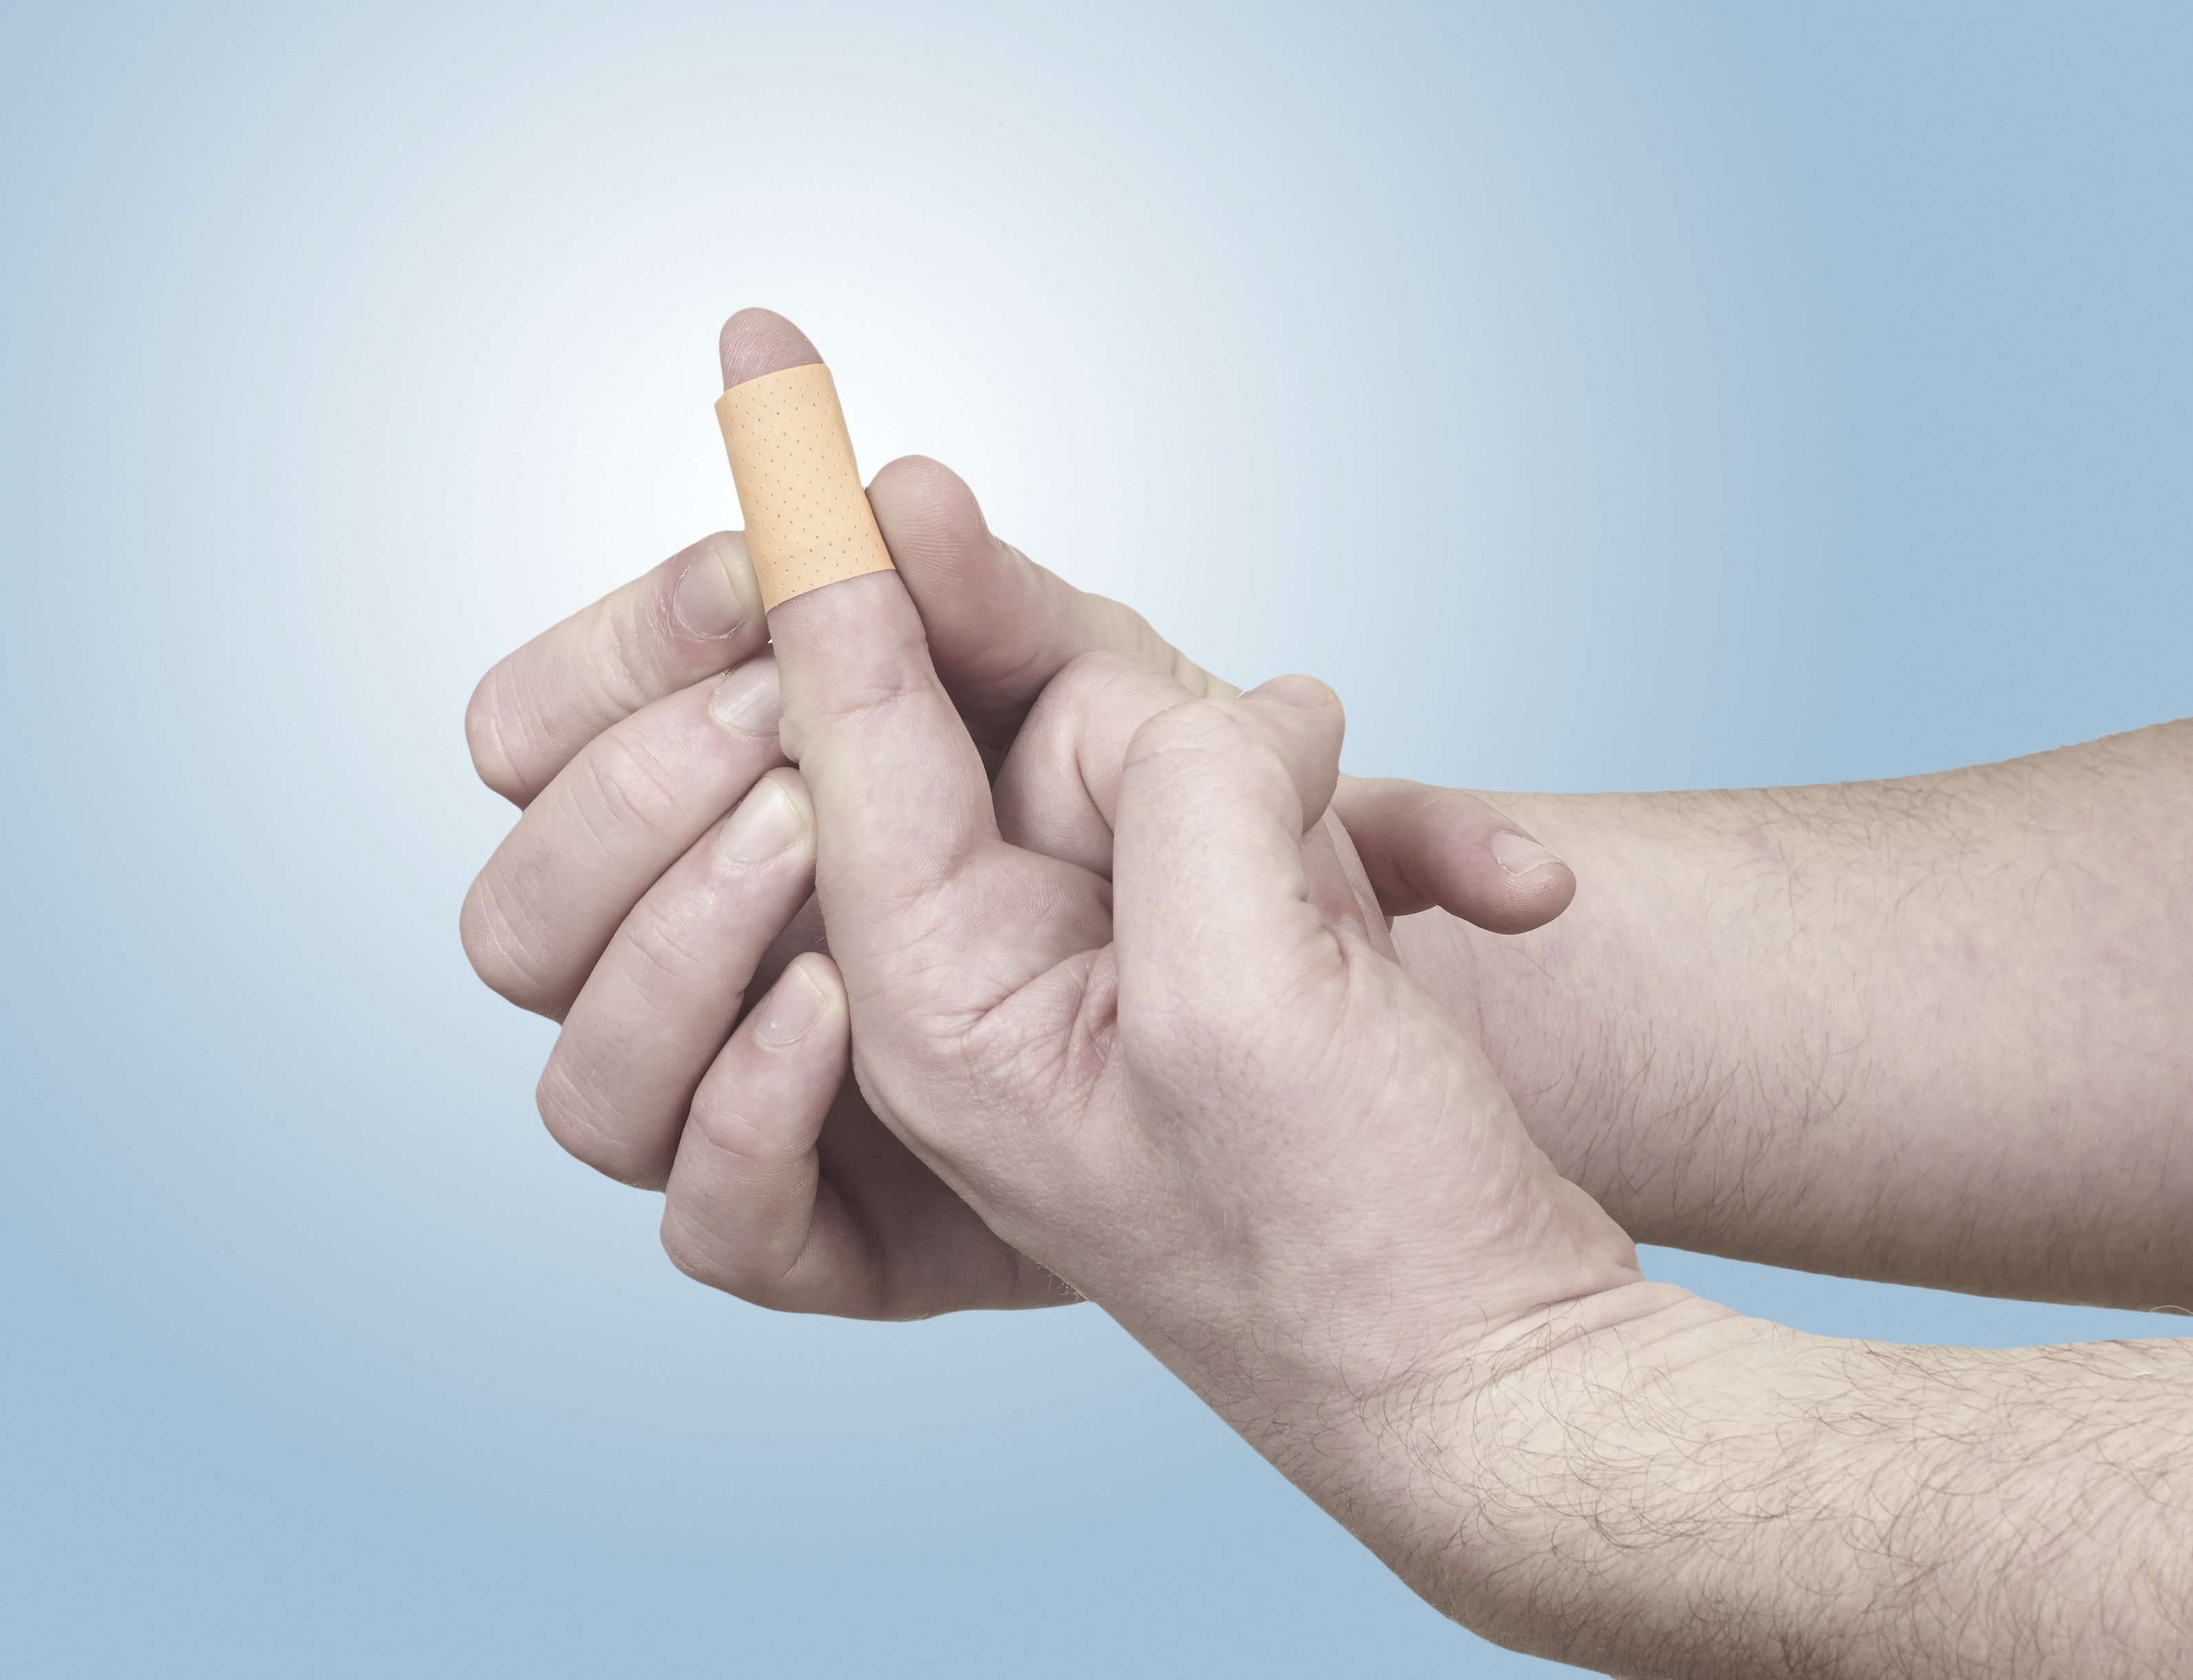 An image depicting a person suffering from finger pain symptoms